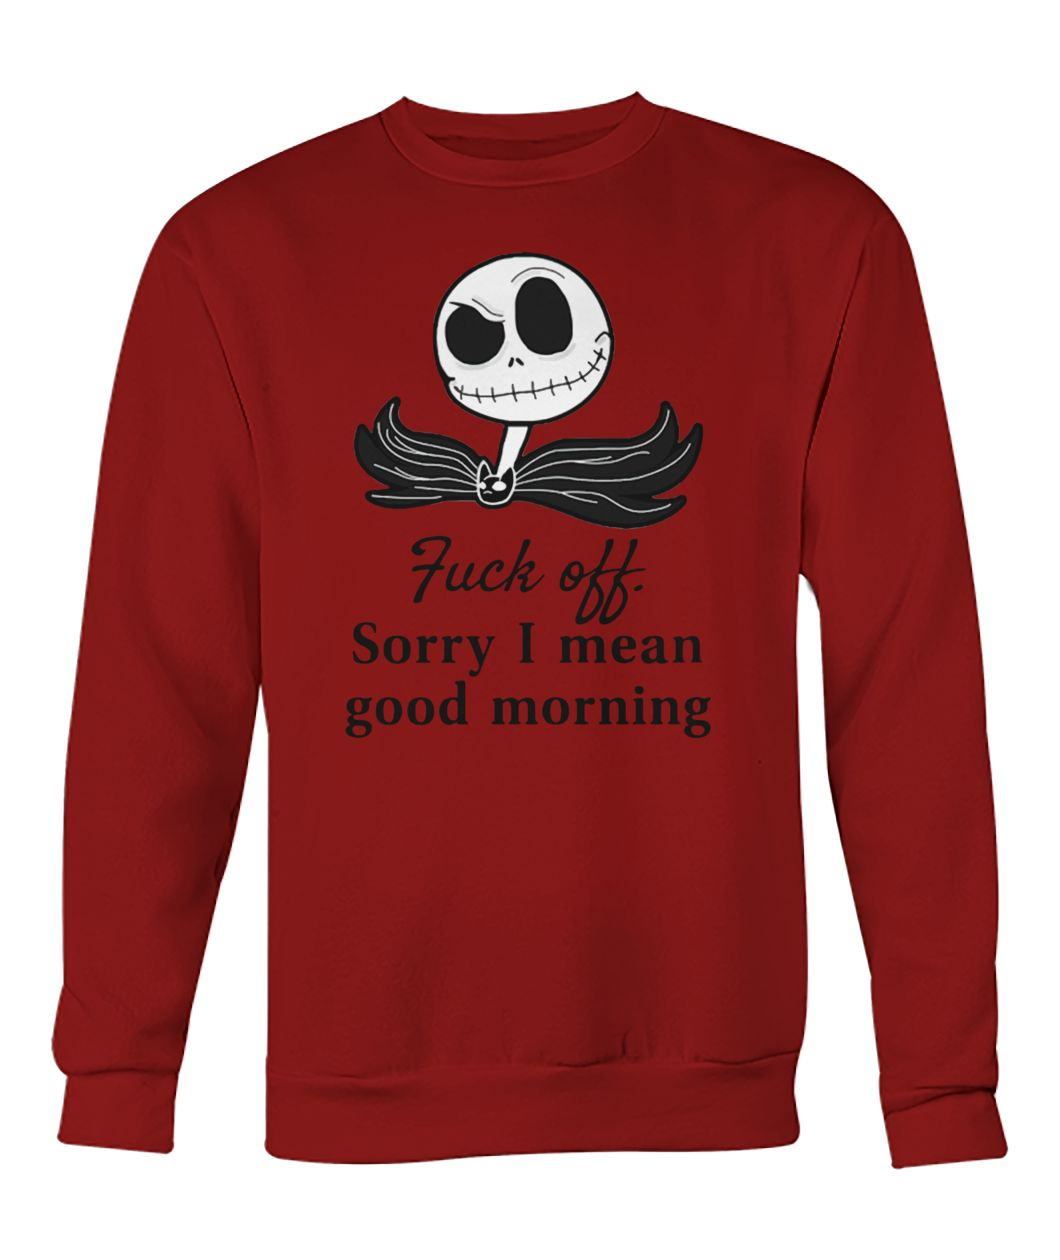 Jack Skellington fuck off sorry I mean good morning crew neck sweatshirt